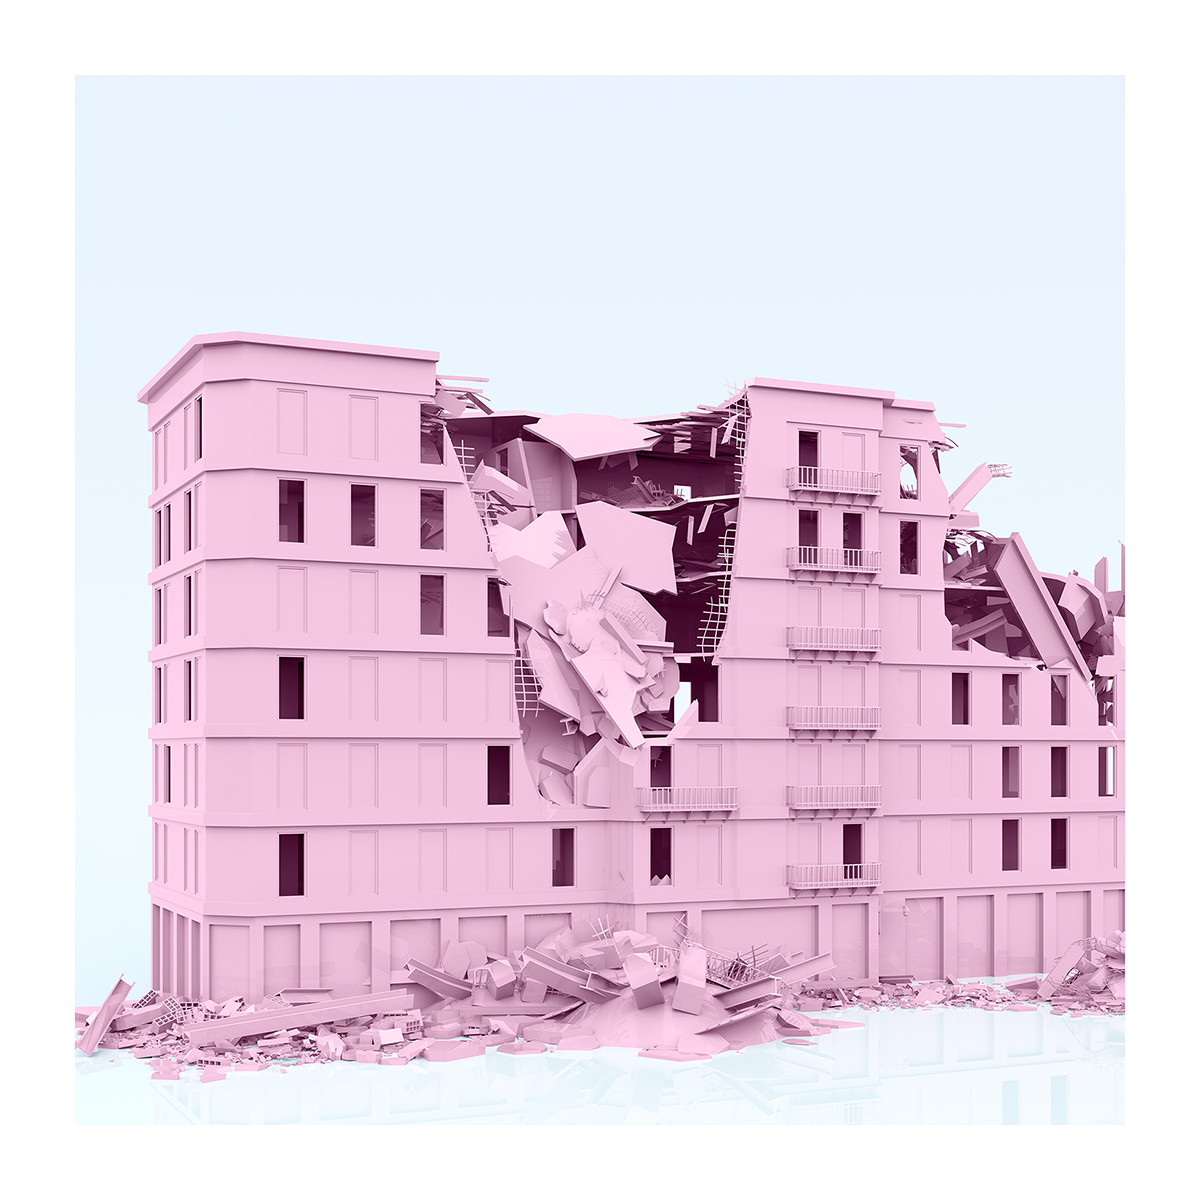 165 I will not Make any more Boring Art XXVIII 001 - 2021 - I will not Make any more Boring Art. XXVIII. (War-Affected Buildings - The Rose Period)